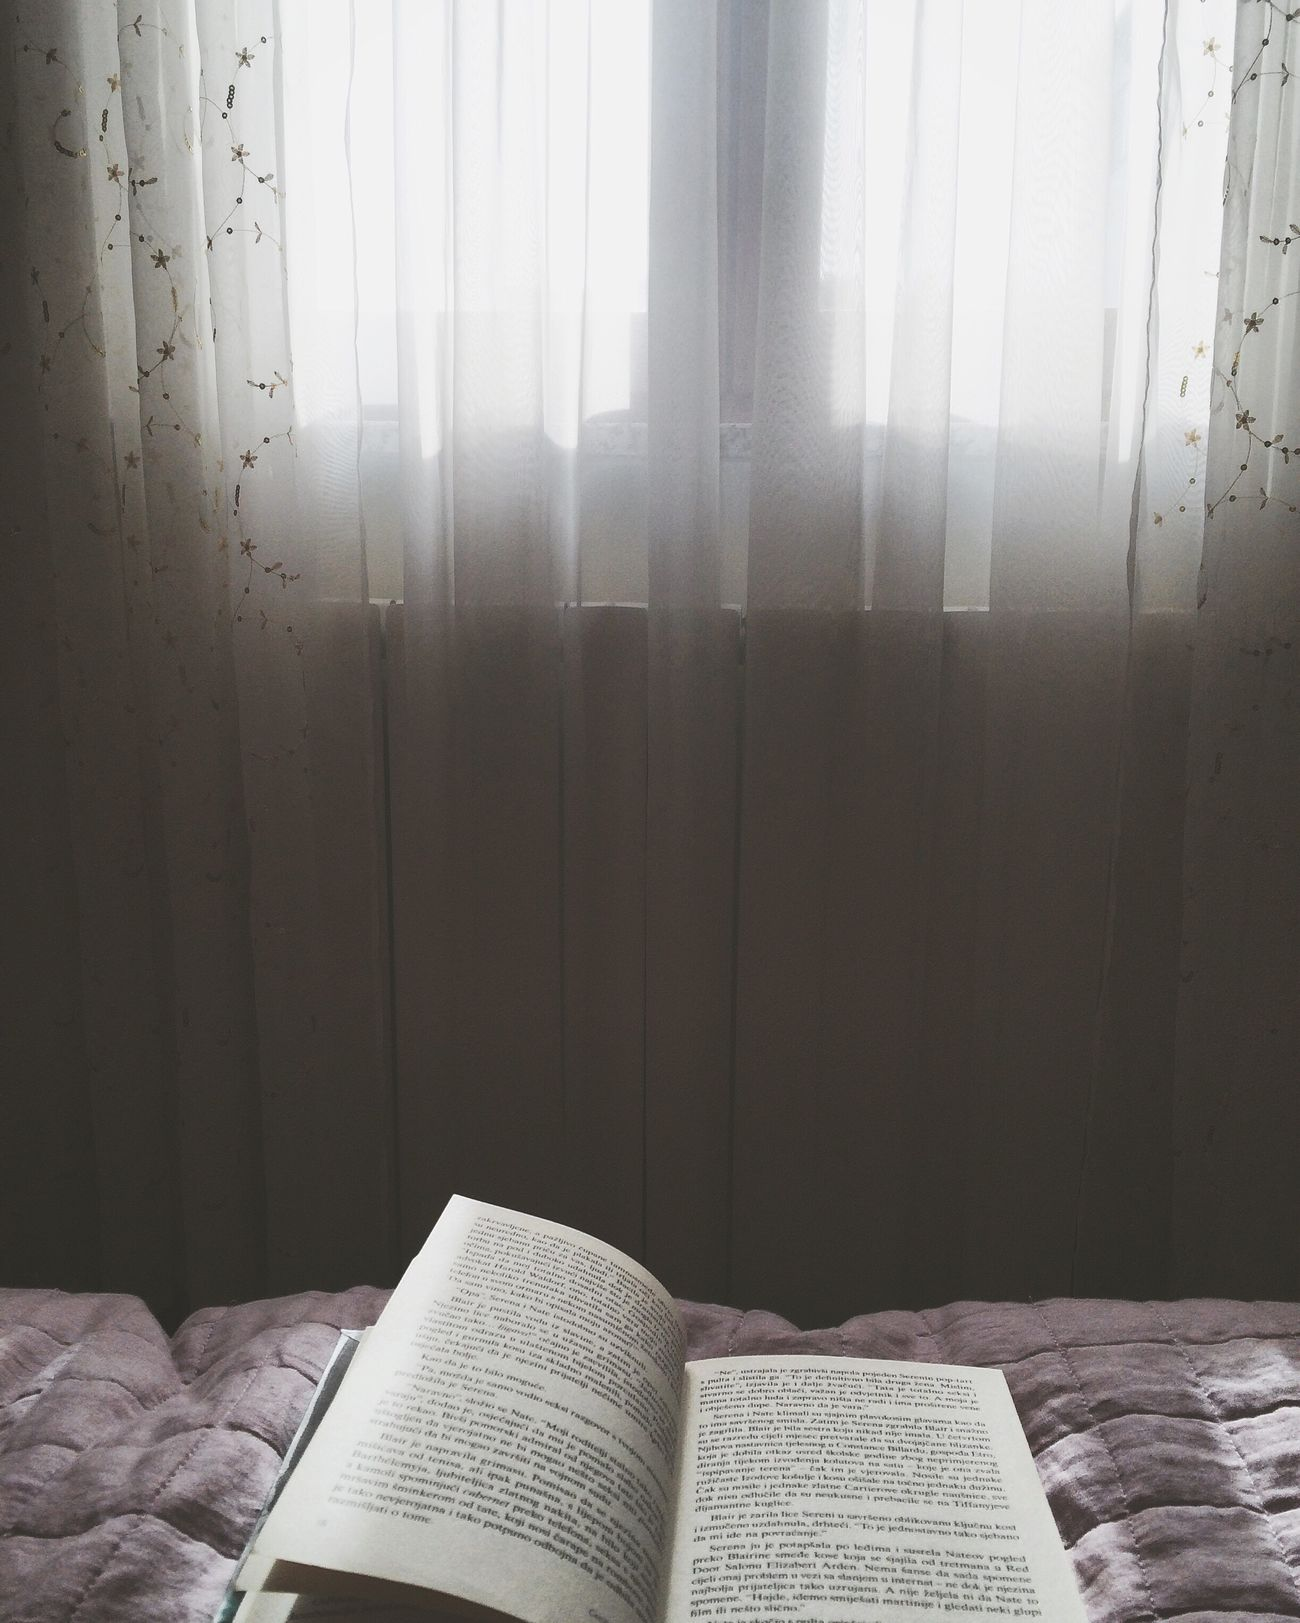 Bed Bedroom Love Reading Books ♥ Another World Thoughts Sunny Free Time My Room View